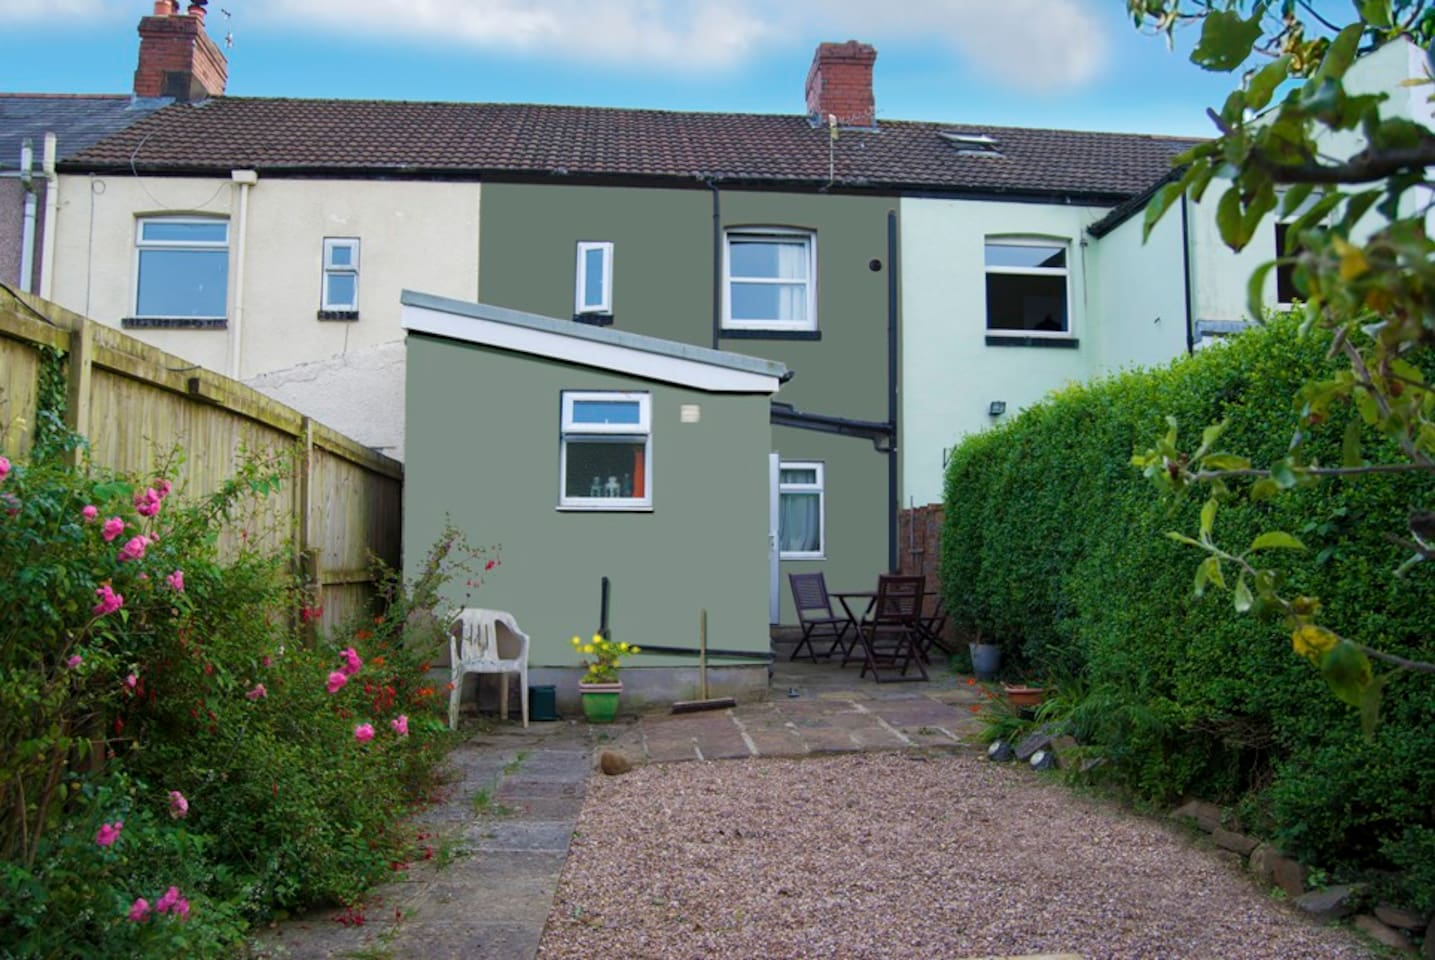 Comfortable 3 bed, secluded garden, 5 minutes from 2 local pubs, 5 mins from transport to Cardiff and the valleys.